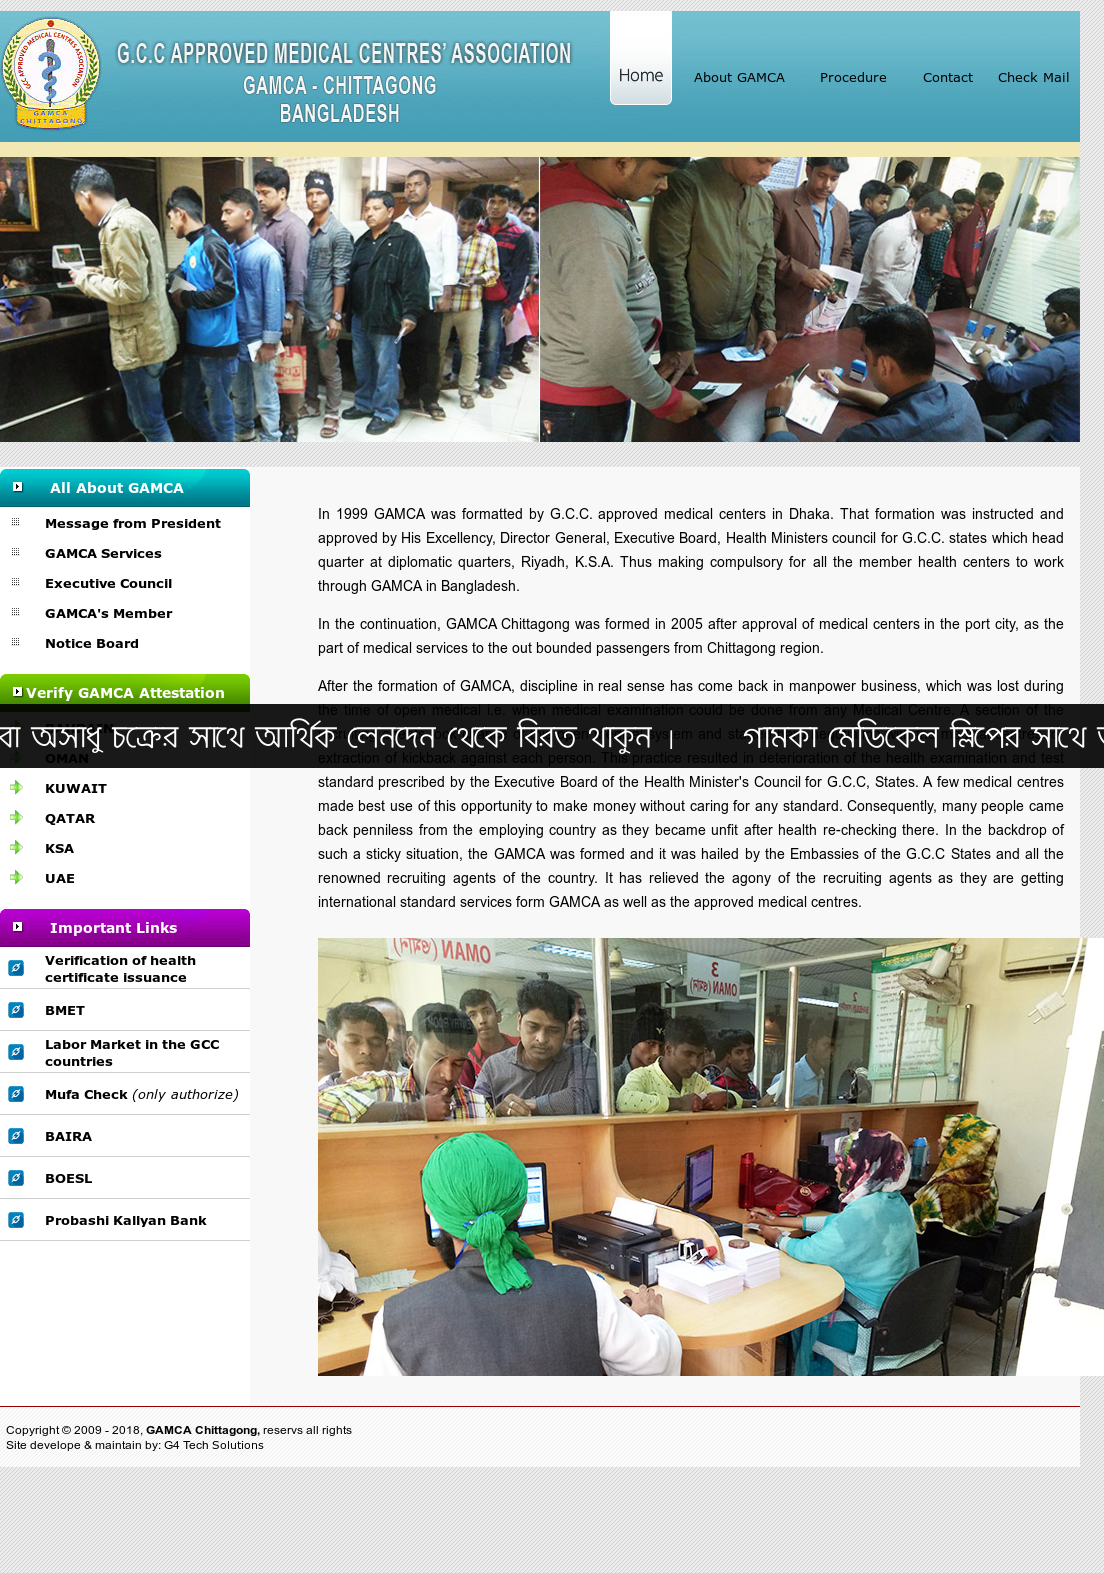 Gamca Chittagong Competitors, Revenue and Employees - Owler